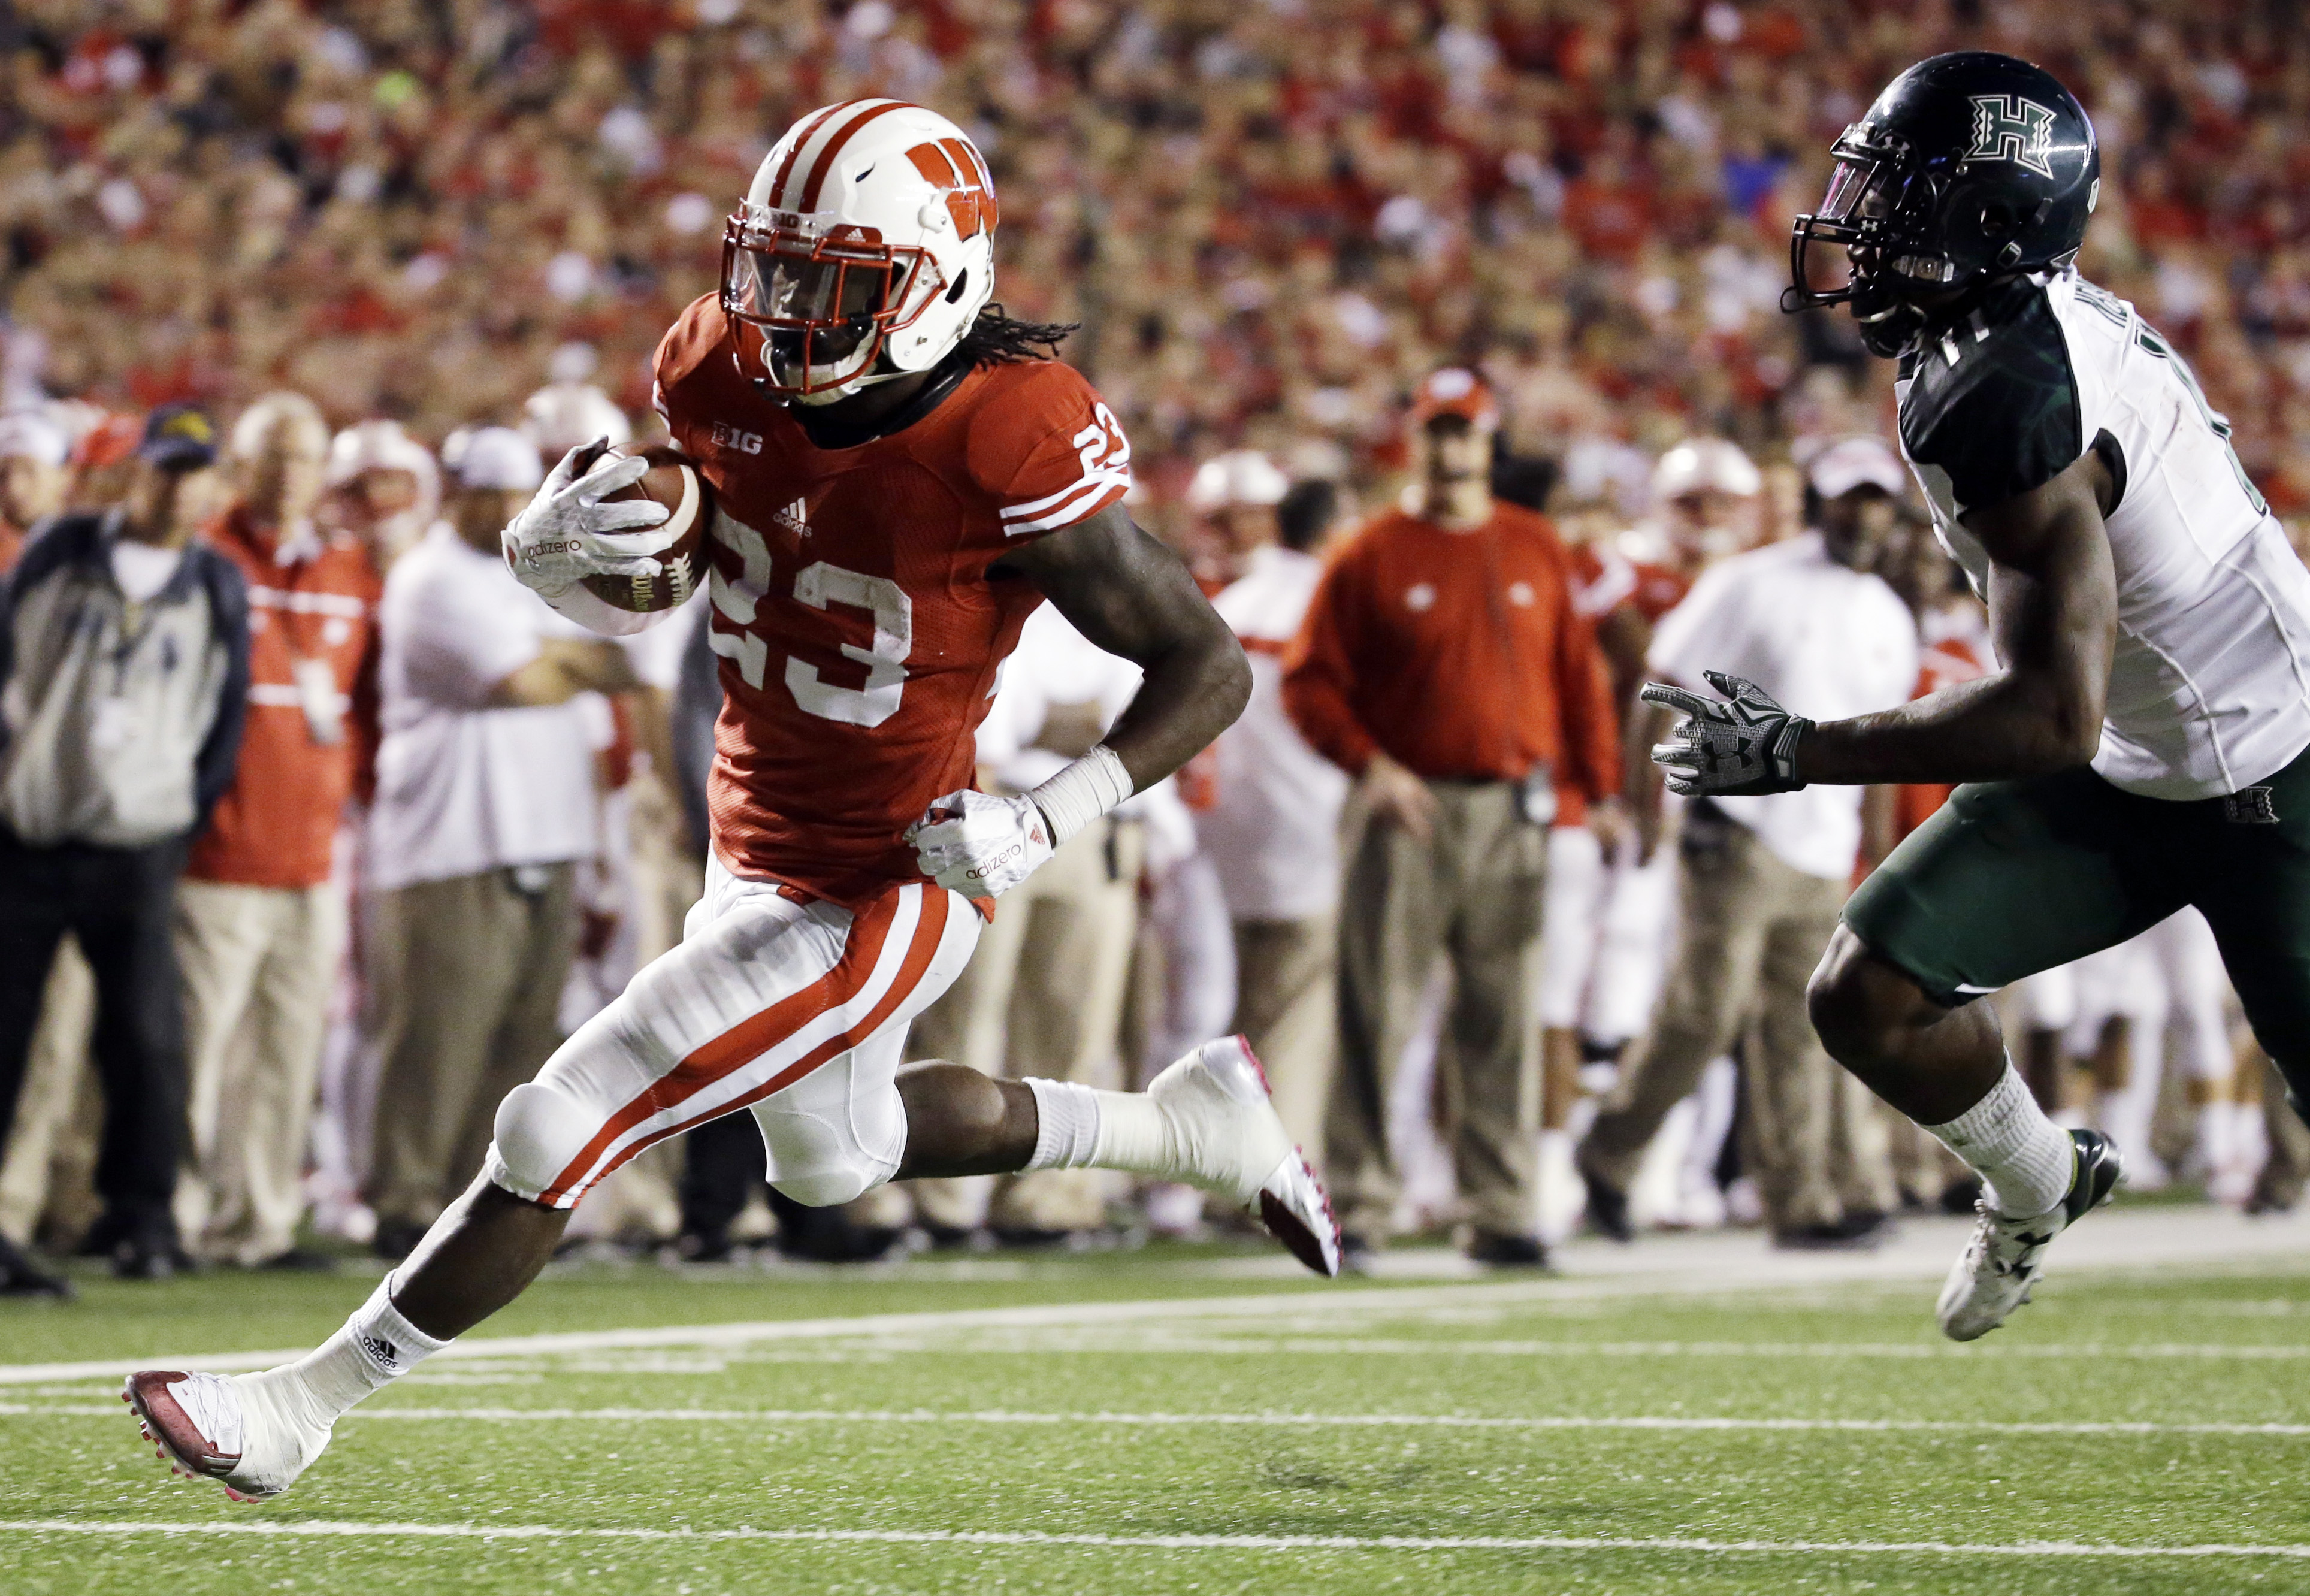 Wisconsin's Dare Ogunbowale gets past Hawaii's Nick Nelson for a touchdown run during the second half of an NCAA college football game Saturday, Sept. 26, 2015, in Madison, Wis. (AP Photo/Morry Gash)